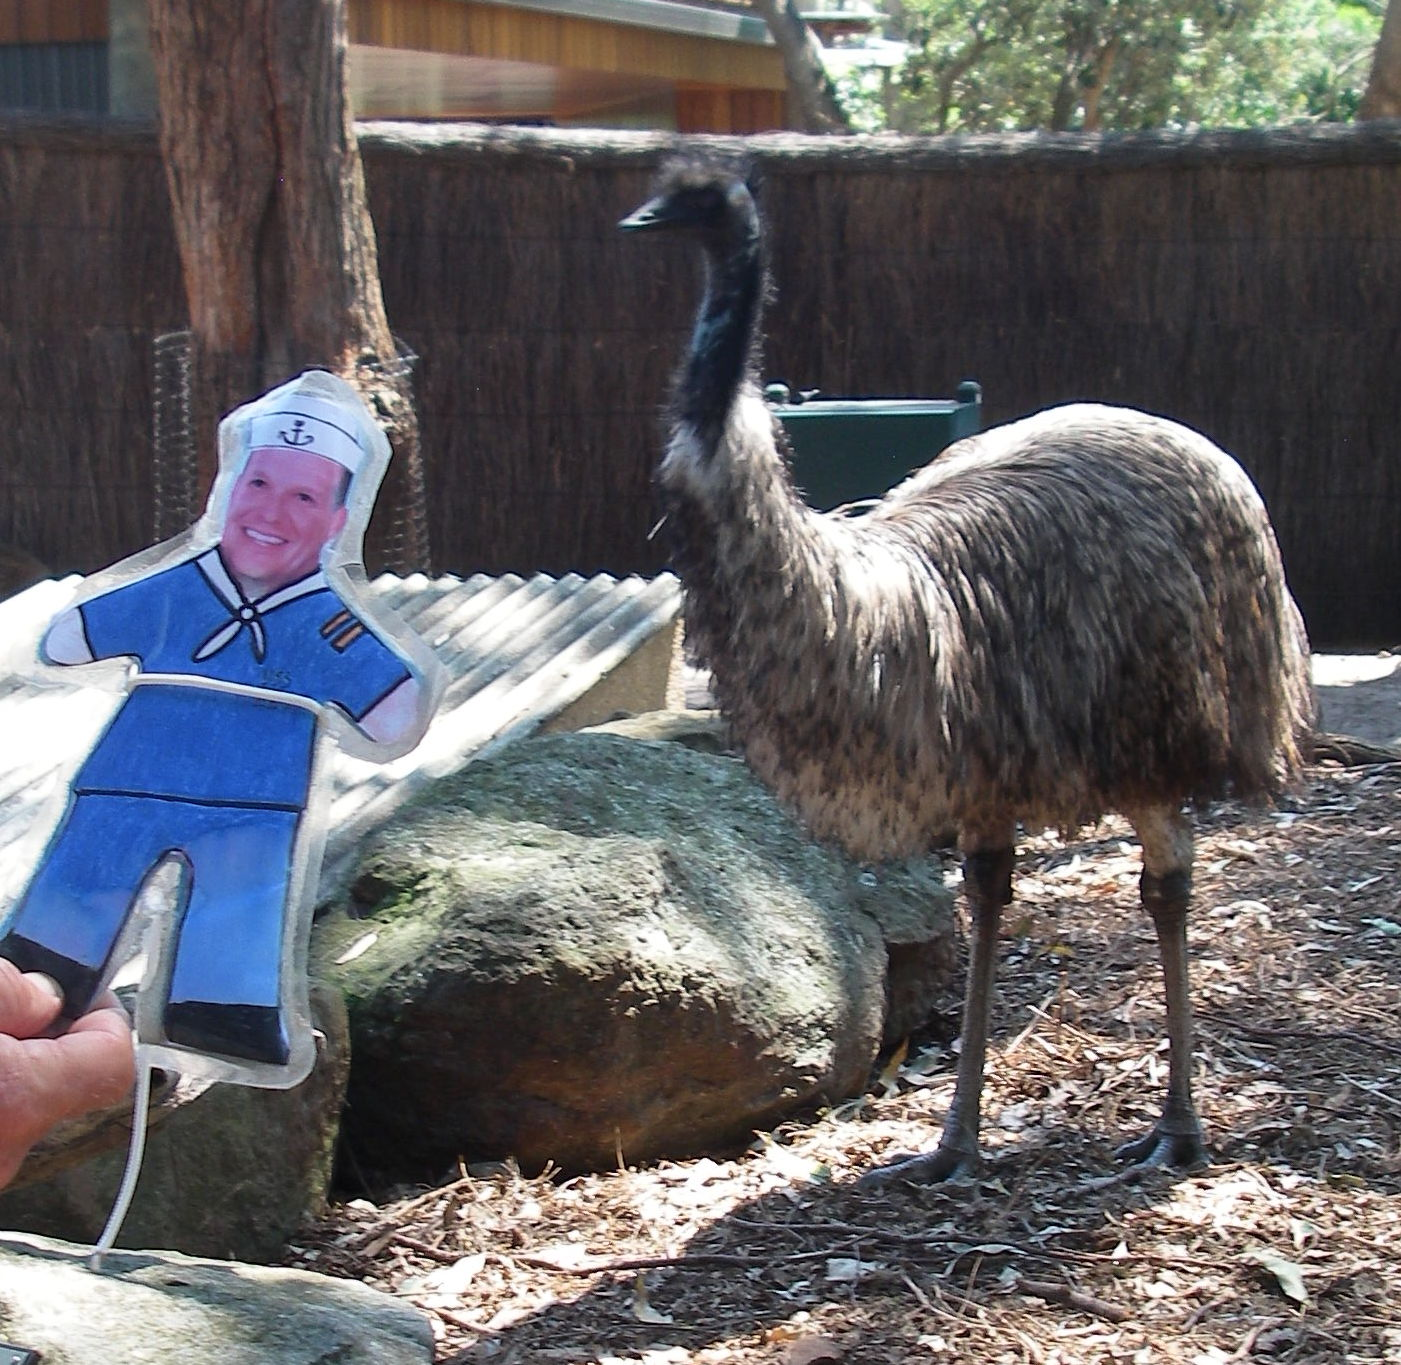 60.8. Flat Mr. Davis saw a huge emu in the Toronga Zoo